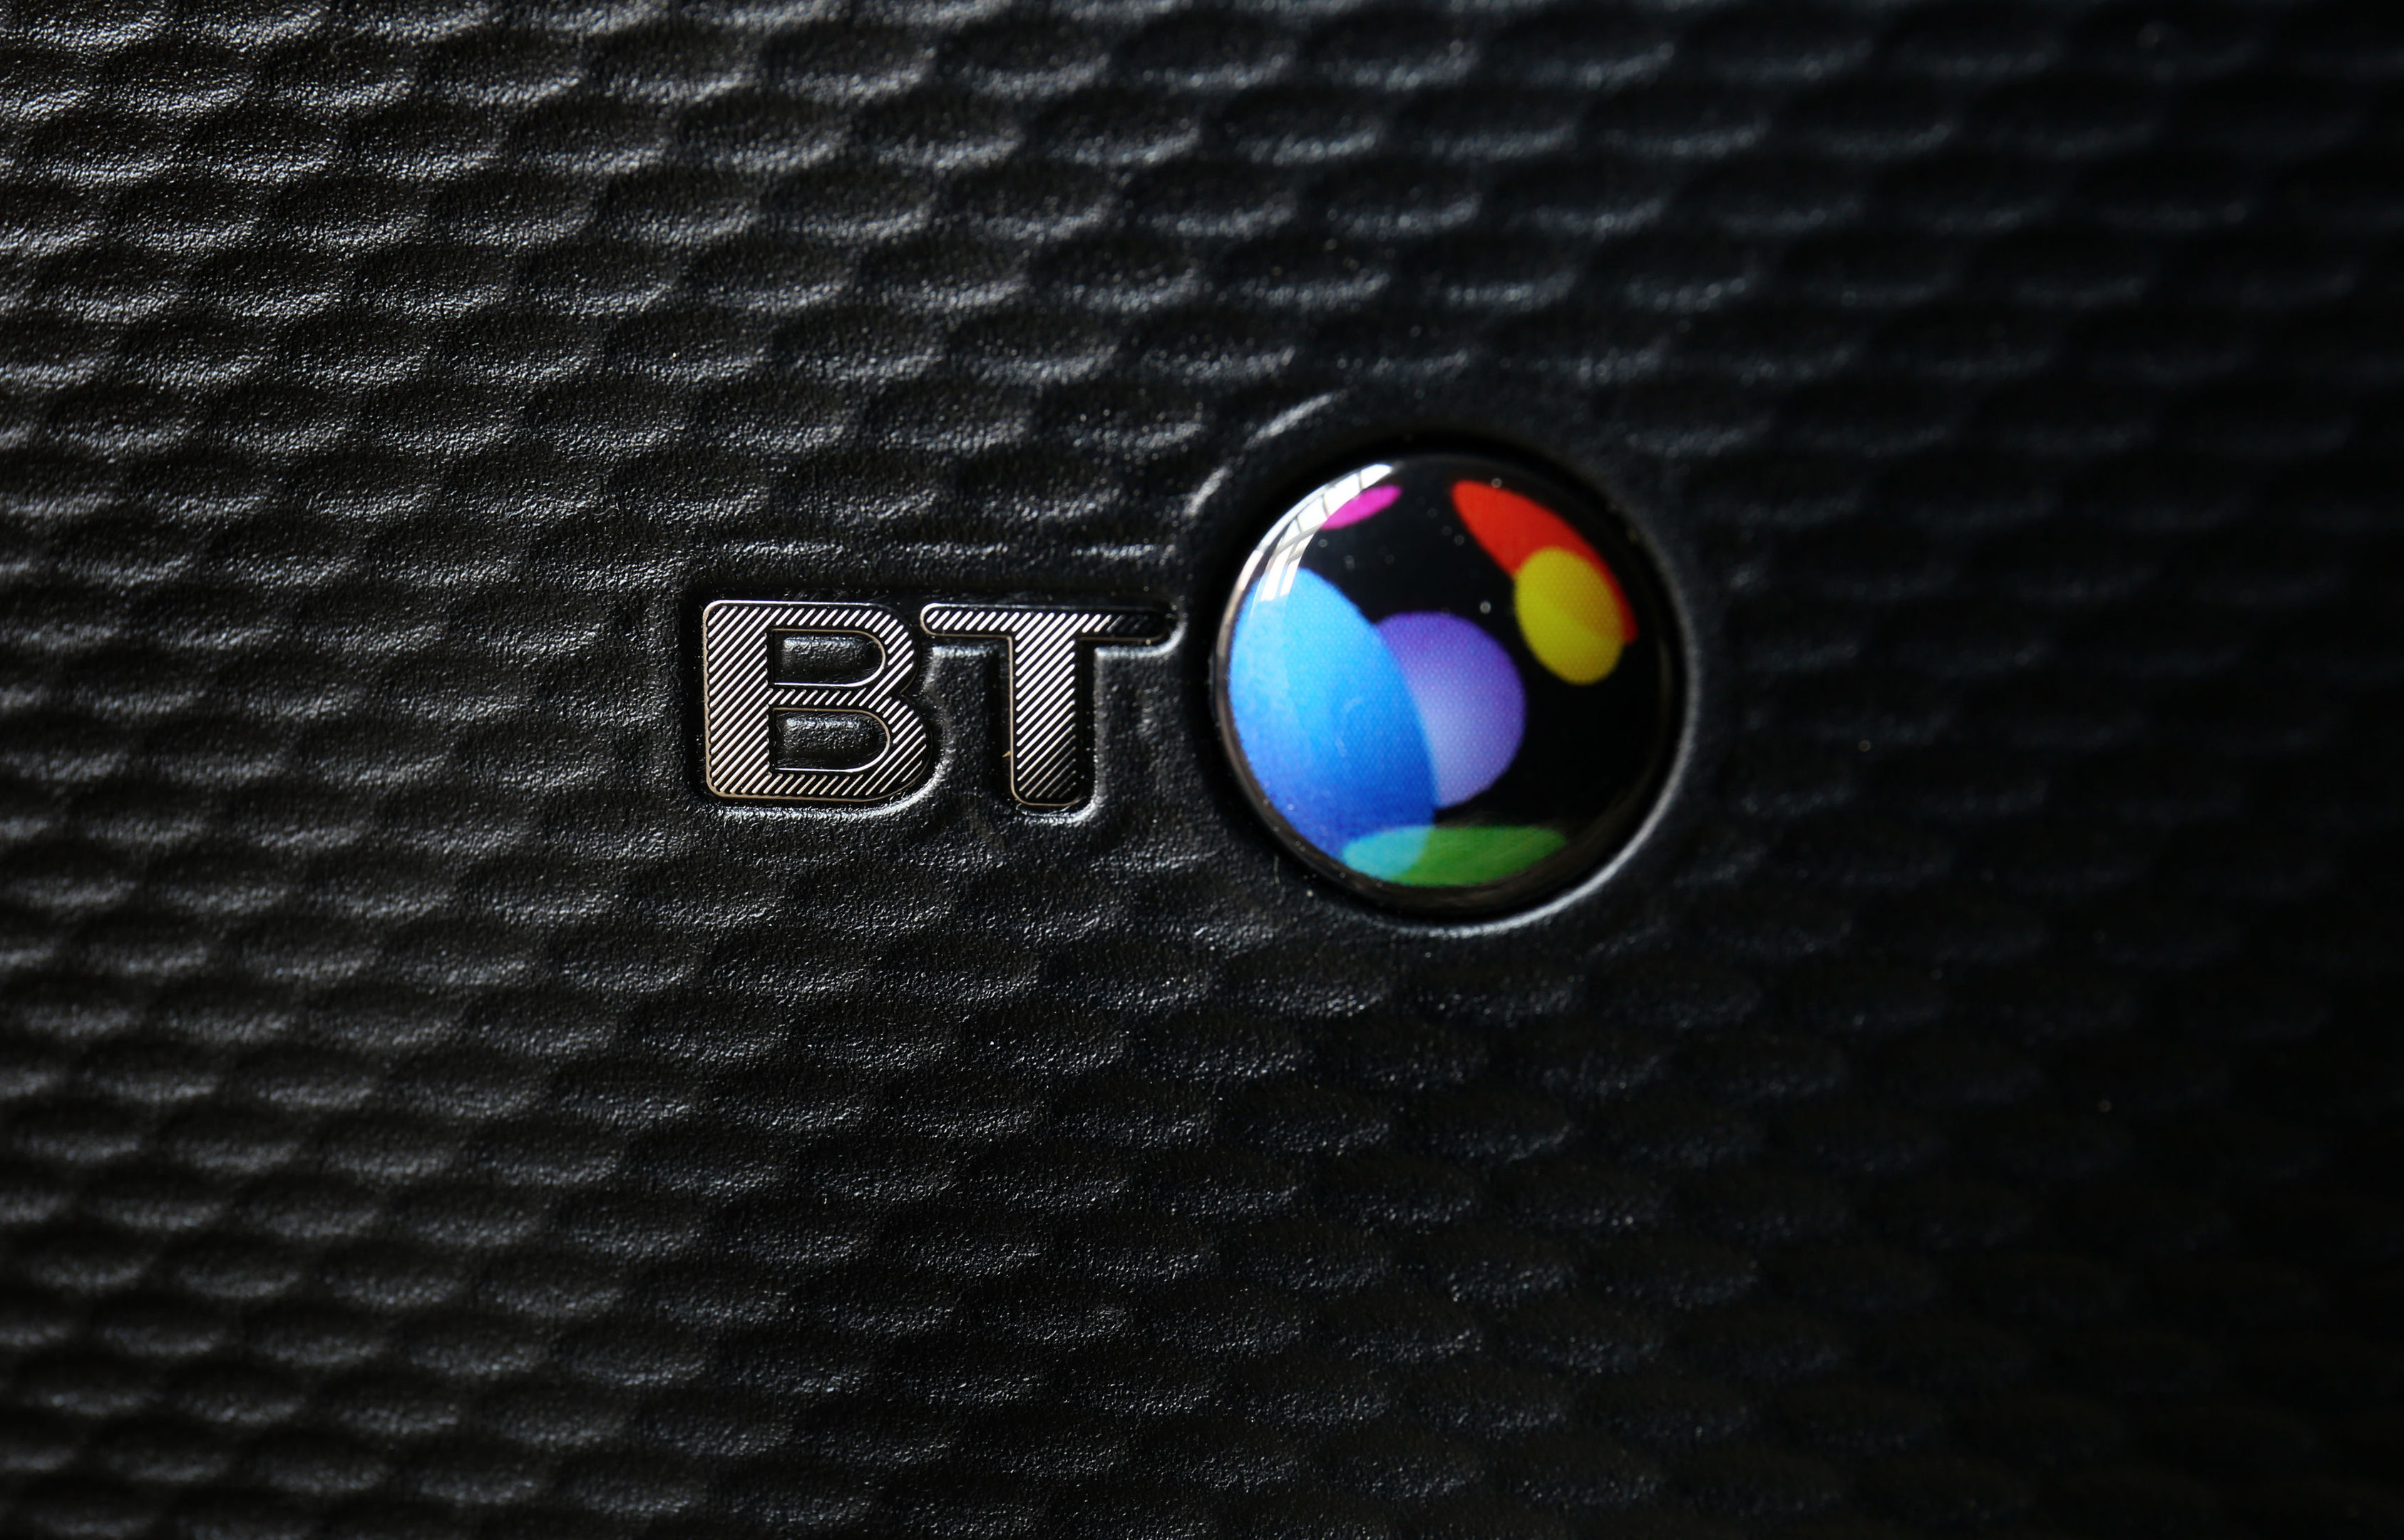 PHONE PROVIDER: BT kept me waiting for three months to fix my faulty line.